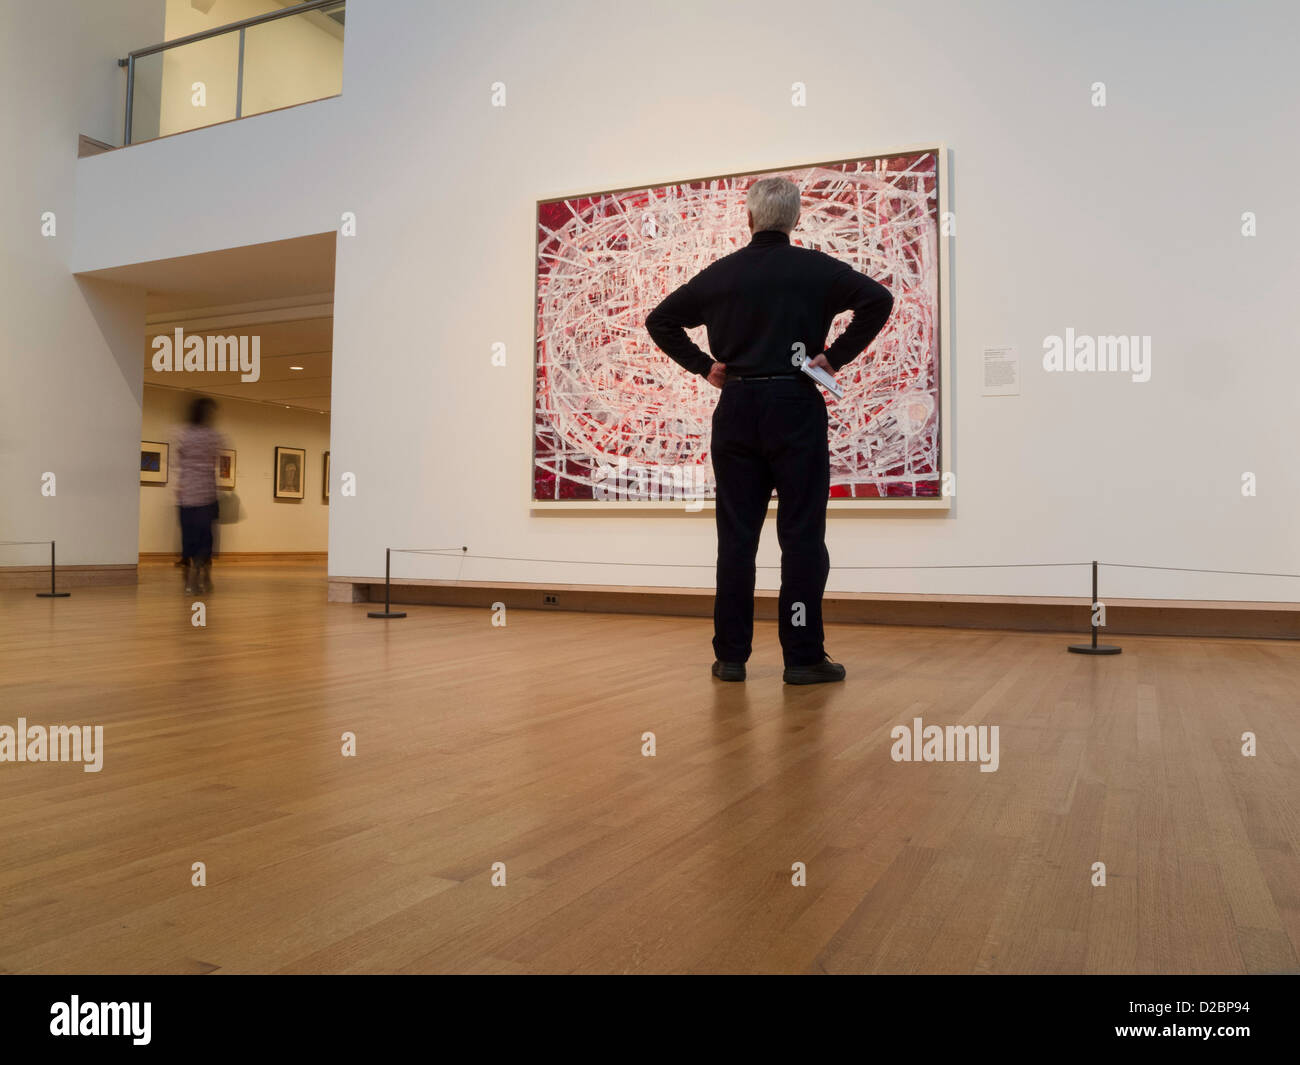 Modern Art Gallery in Levine Court, the Metropolitan Museum of Art, NYC - Stock Image